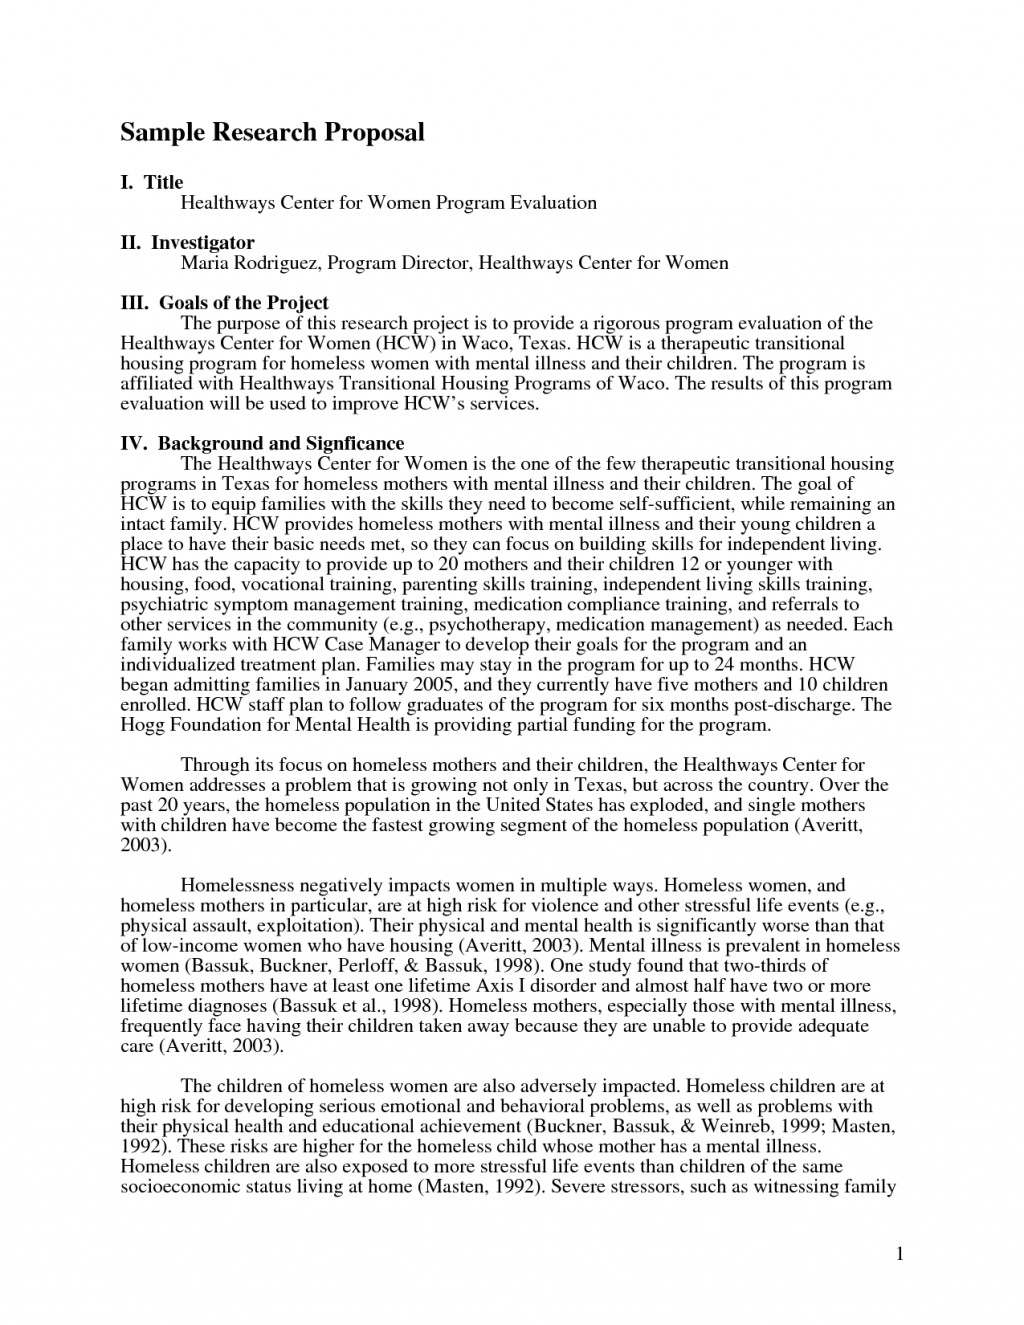 011 Research Paper Psychology Proposal Sample 612686 Writingn Introduction To Top Writing An A Intro Steps In Large